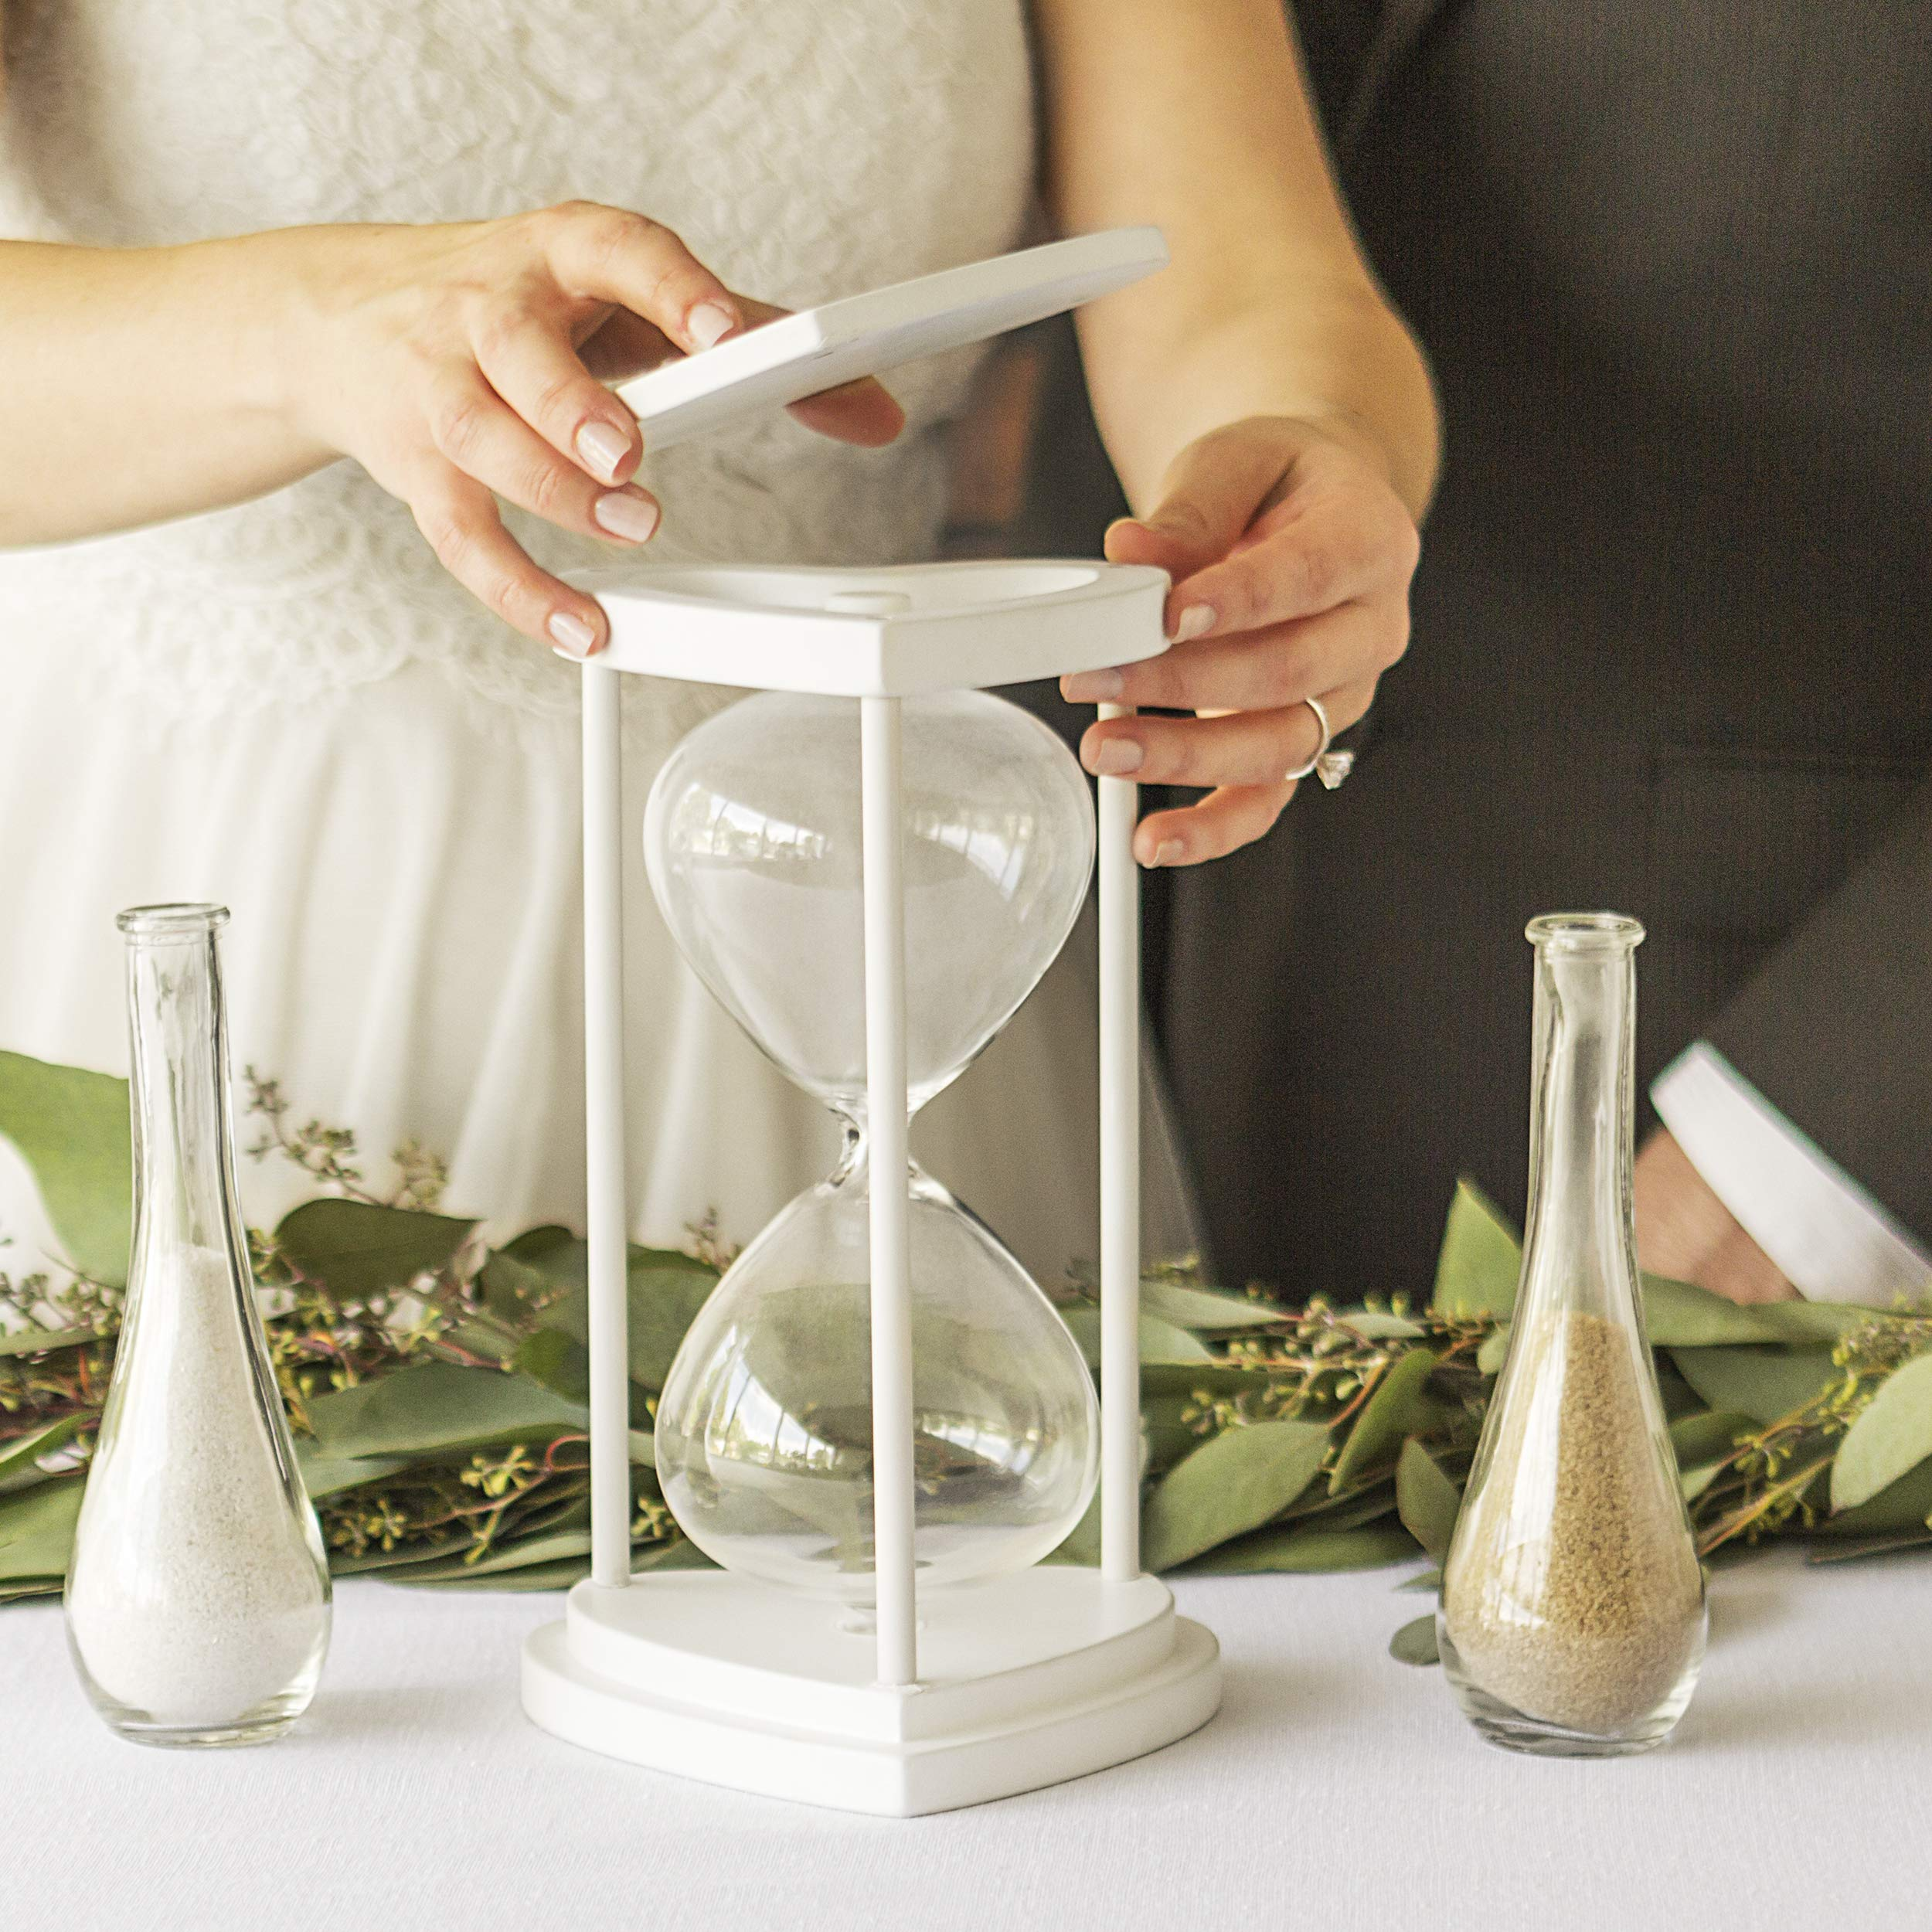 Cathy's Concepts Personalized Floral Unity Sand Ceremony Hourglass Set by Cathy's Concepts (Image #4)